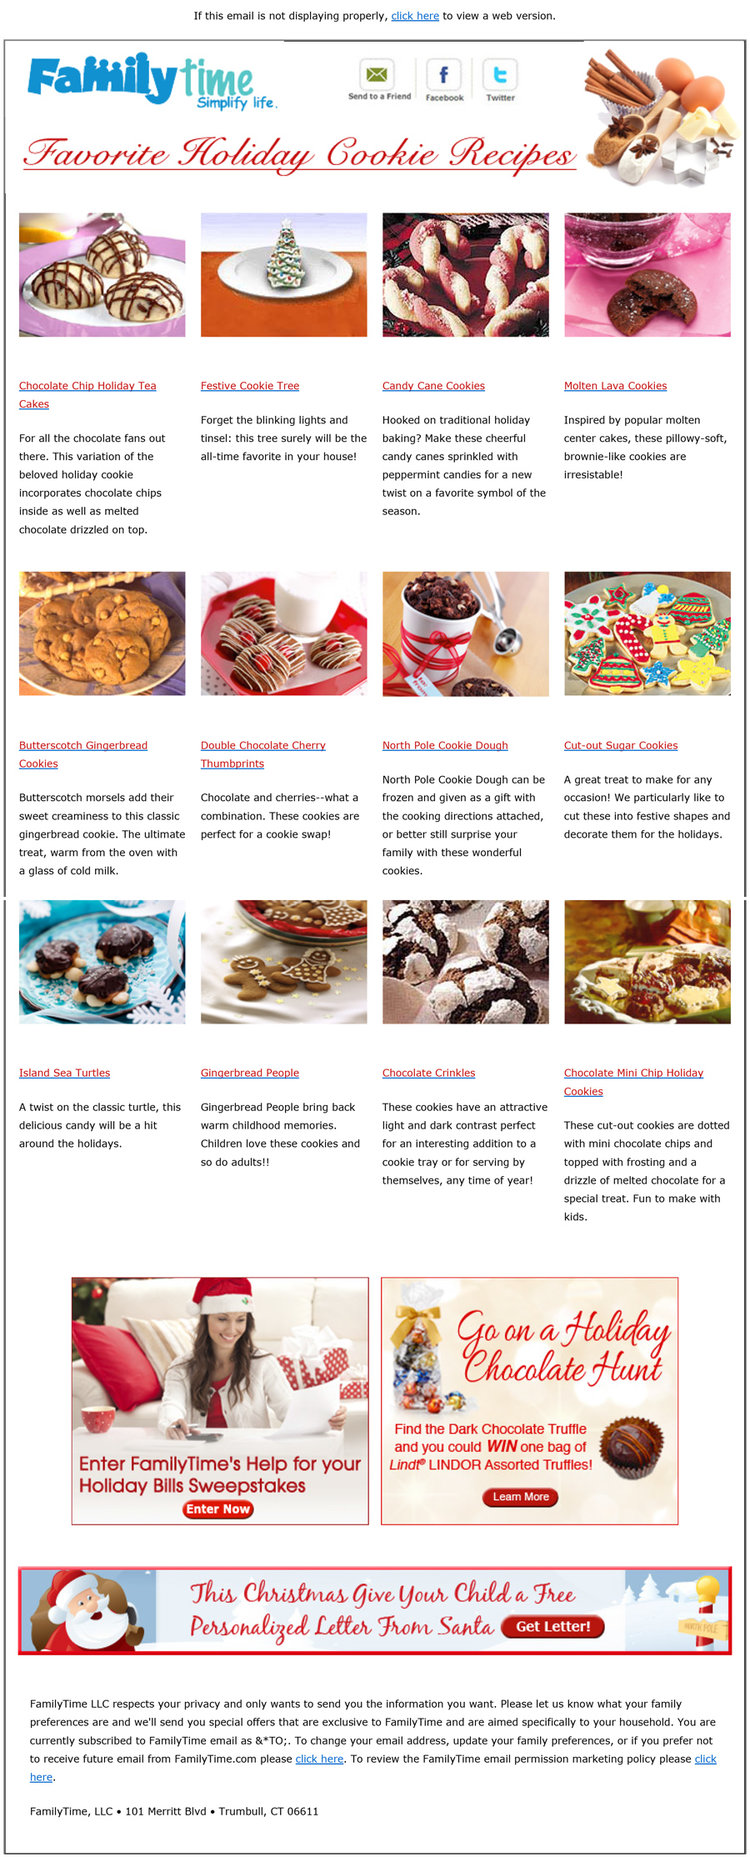 christmascookies_ENewsletter.jpg